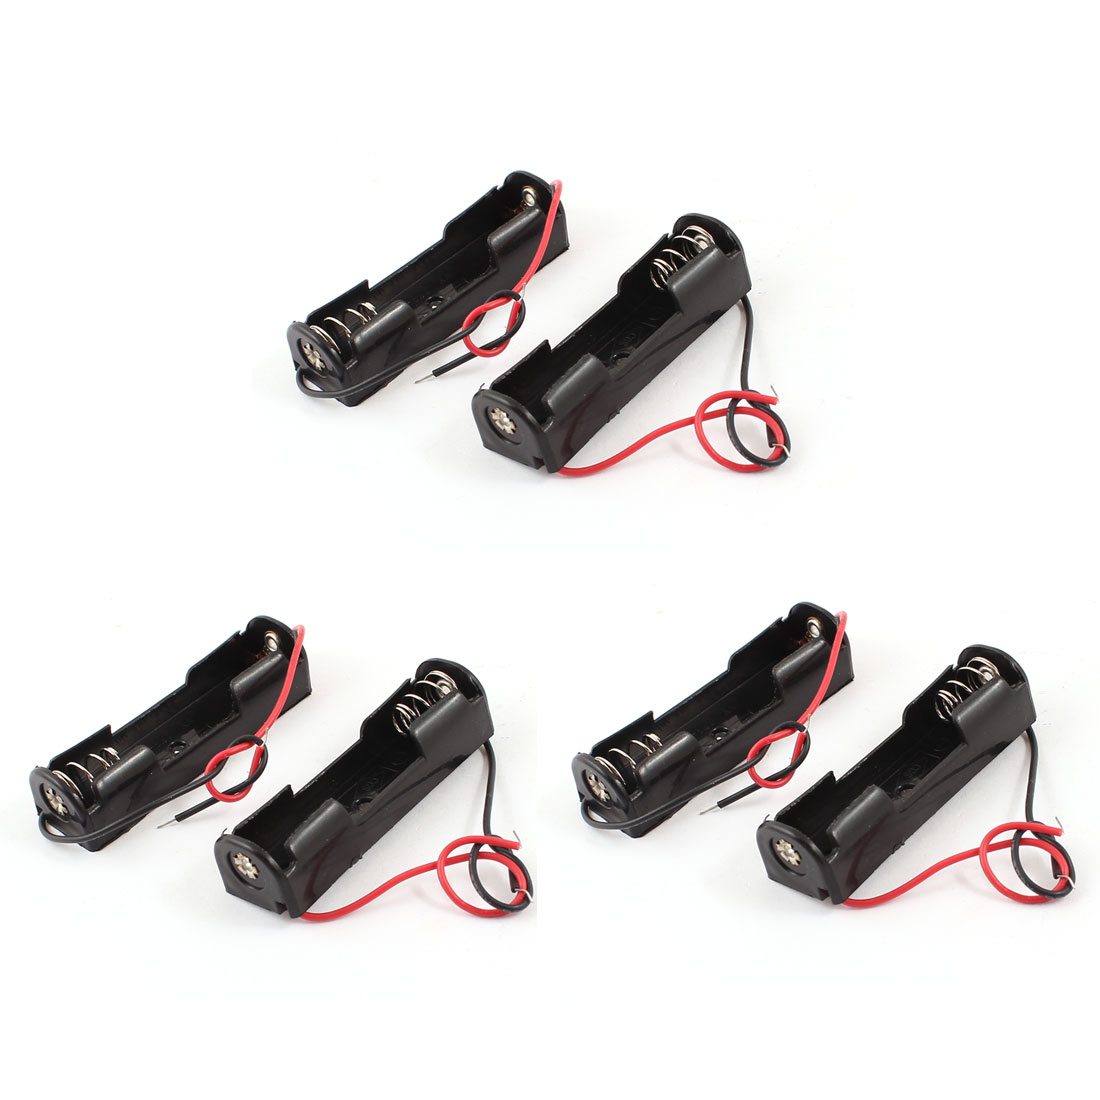 6 Pcs Wired Lead 1 x 1.5V AA Battery Holder Plastic Case Storage Box Black